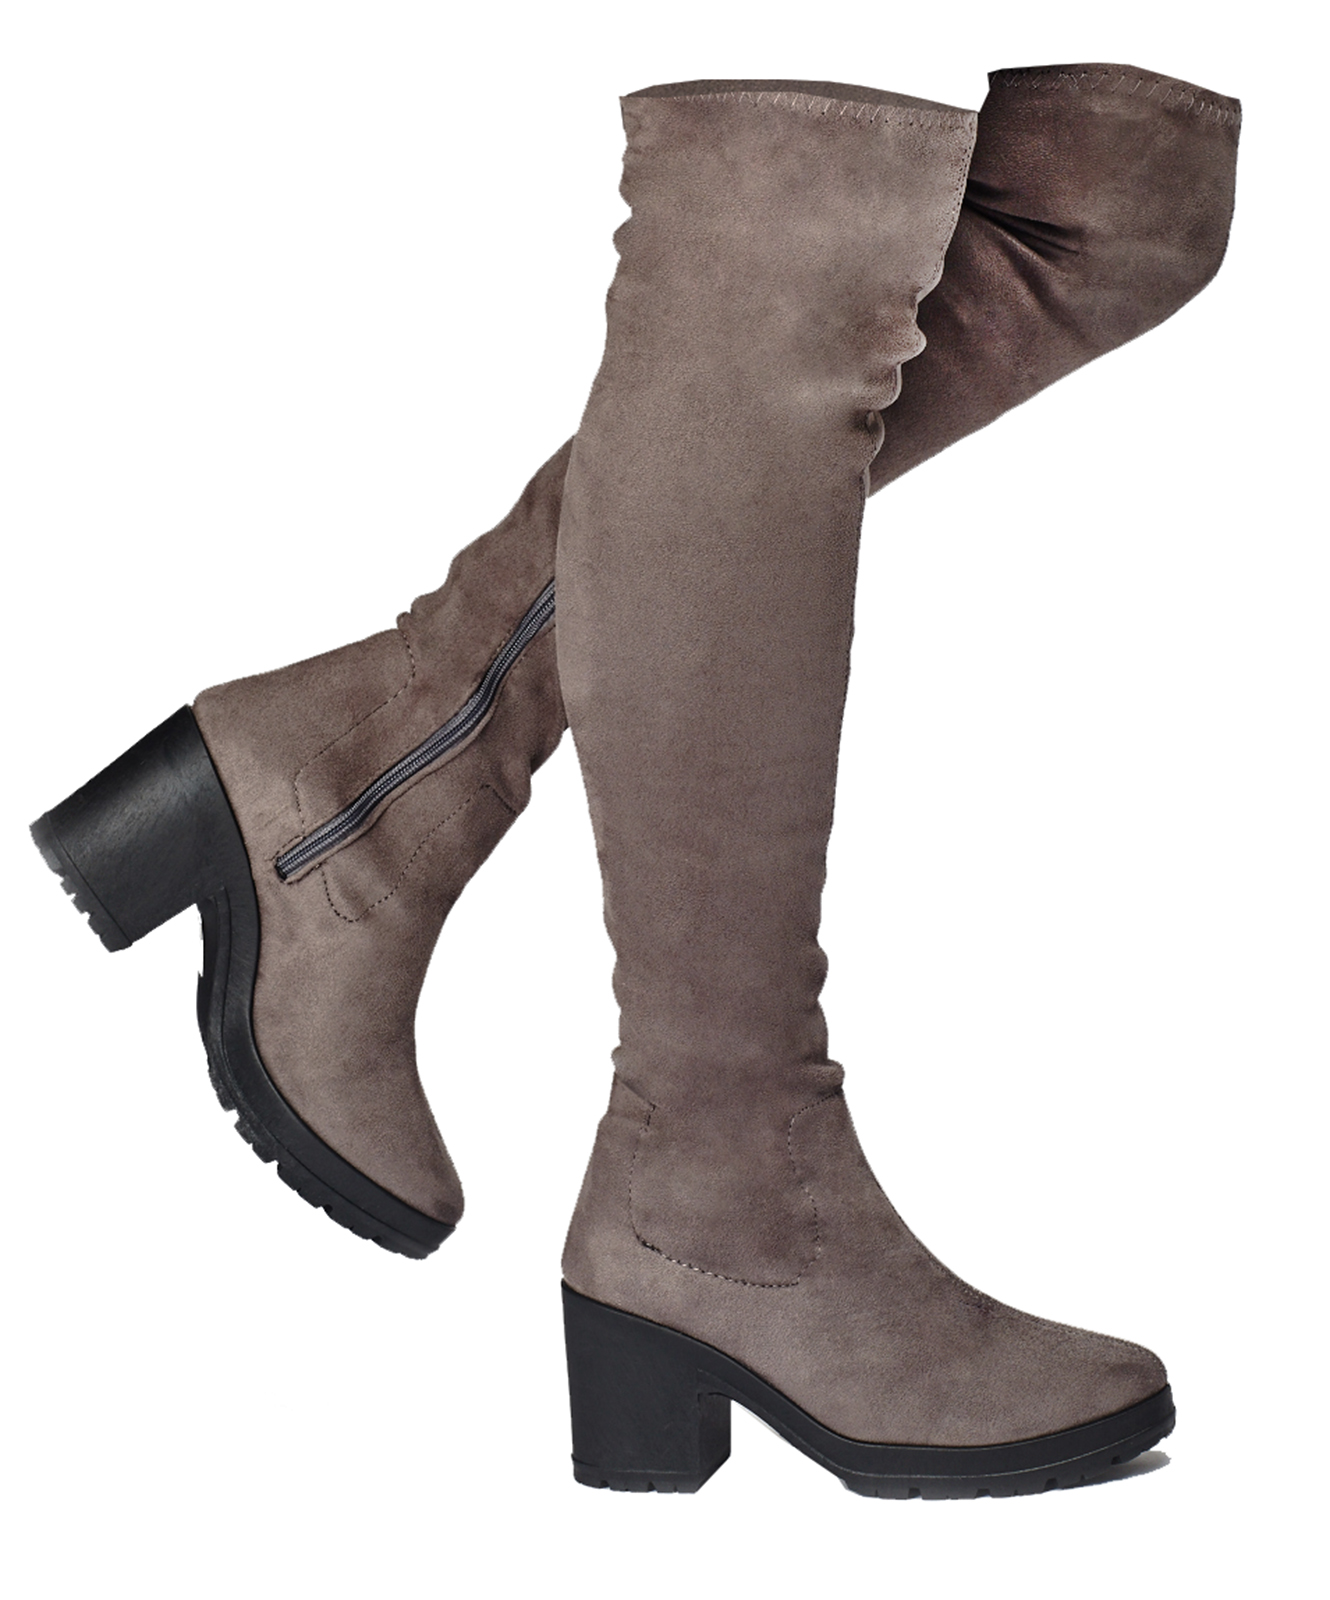 LADIES-GREY-STRETCH-OVER-THE-KNEE-HIGH-ZIP-UP-PLATFORM-BOOTS-SHOES-SIZES-3-9 thumbnail 8